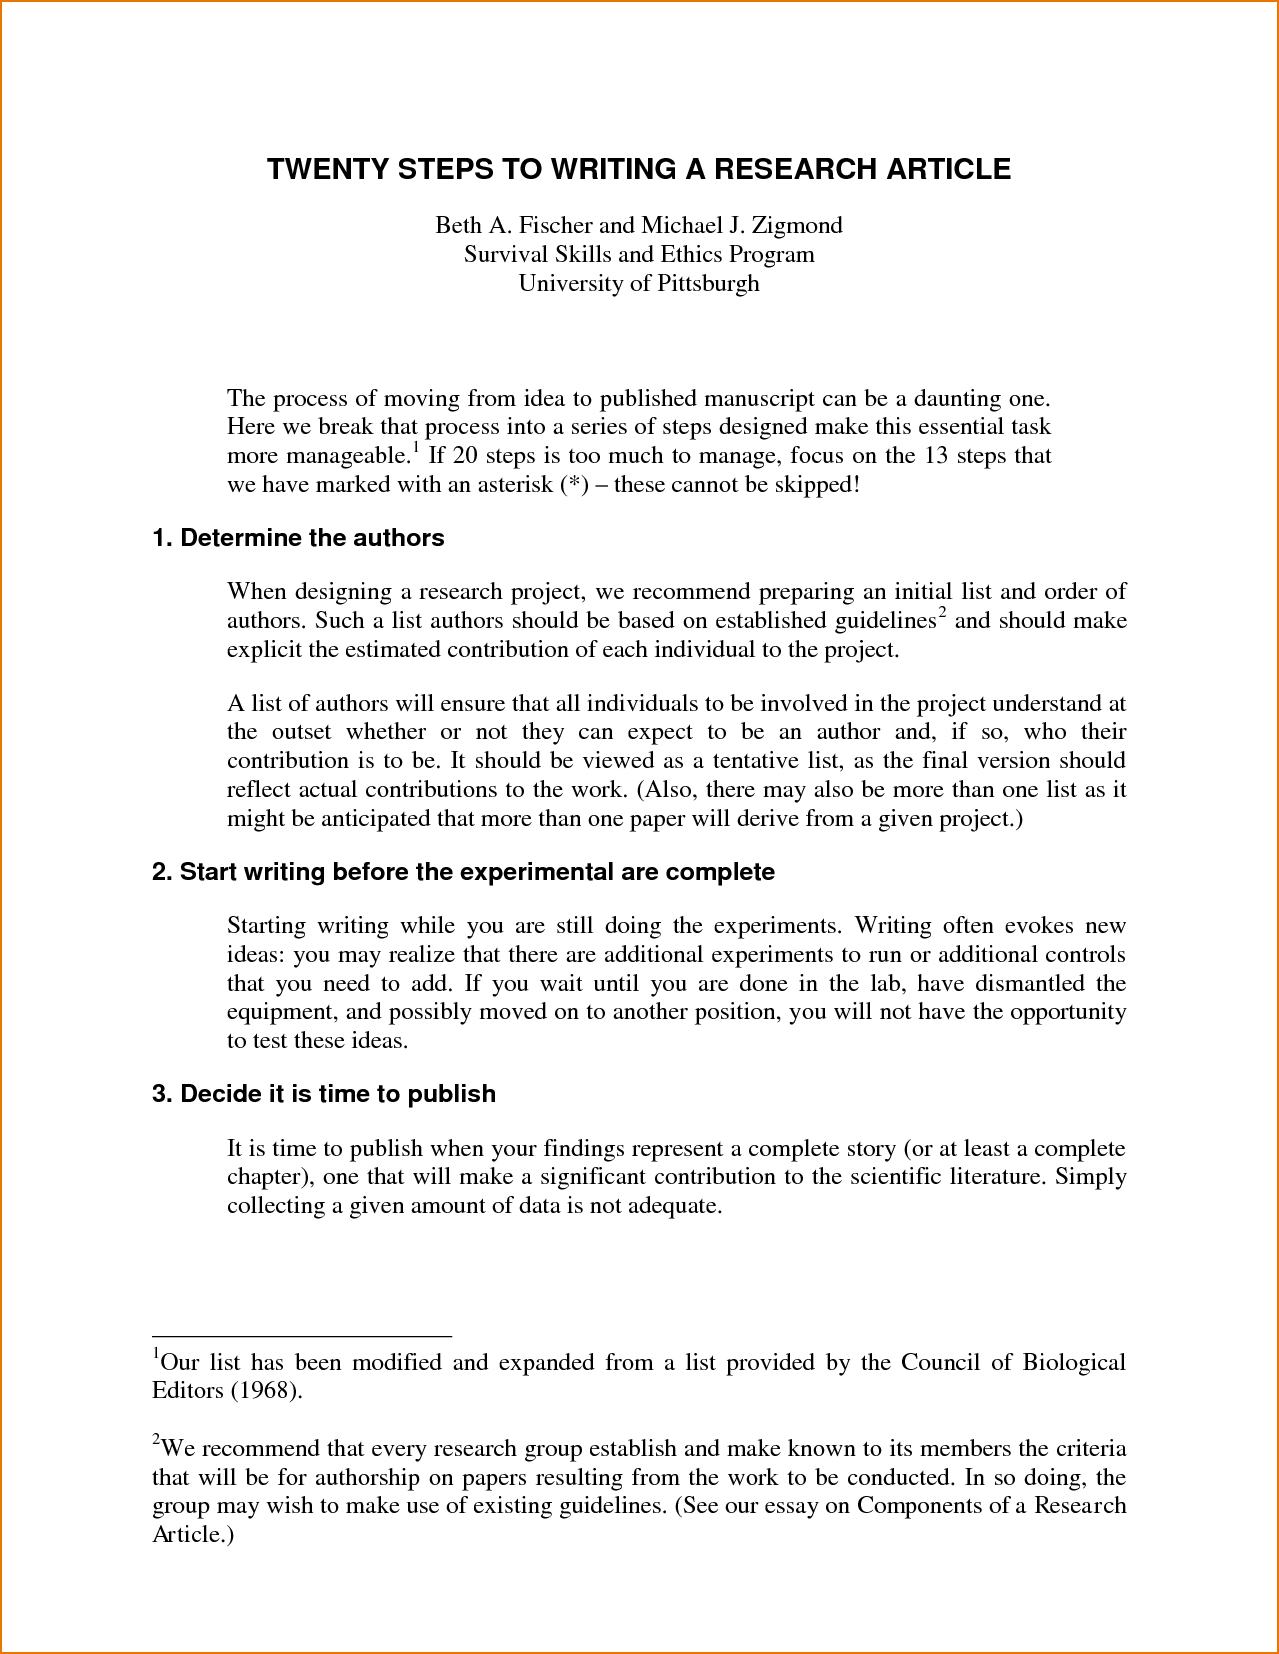 Essay Proposal Examples Guidelines In Writing A Research Paper Term Paper Pinterest Guidelines In  Writing A Research Paper Narrative Essay Topics For High School also Computer Science Essay Topics Health And Social Care Essays Essay Term Paper With Essays About  Thesis Support Essay